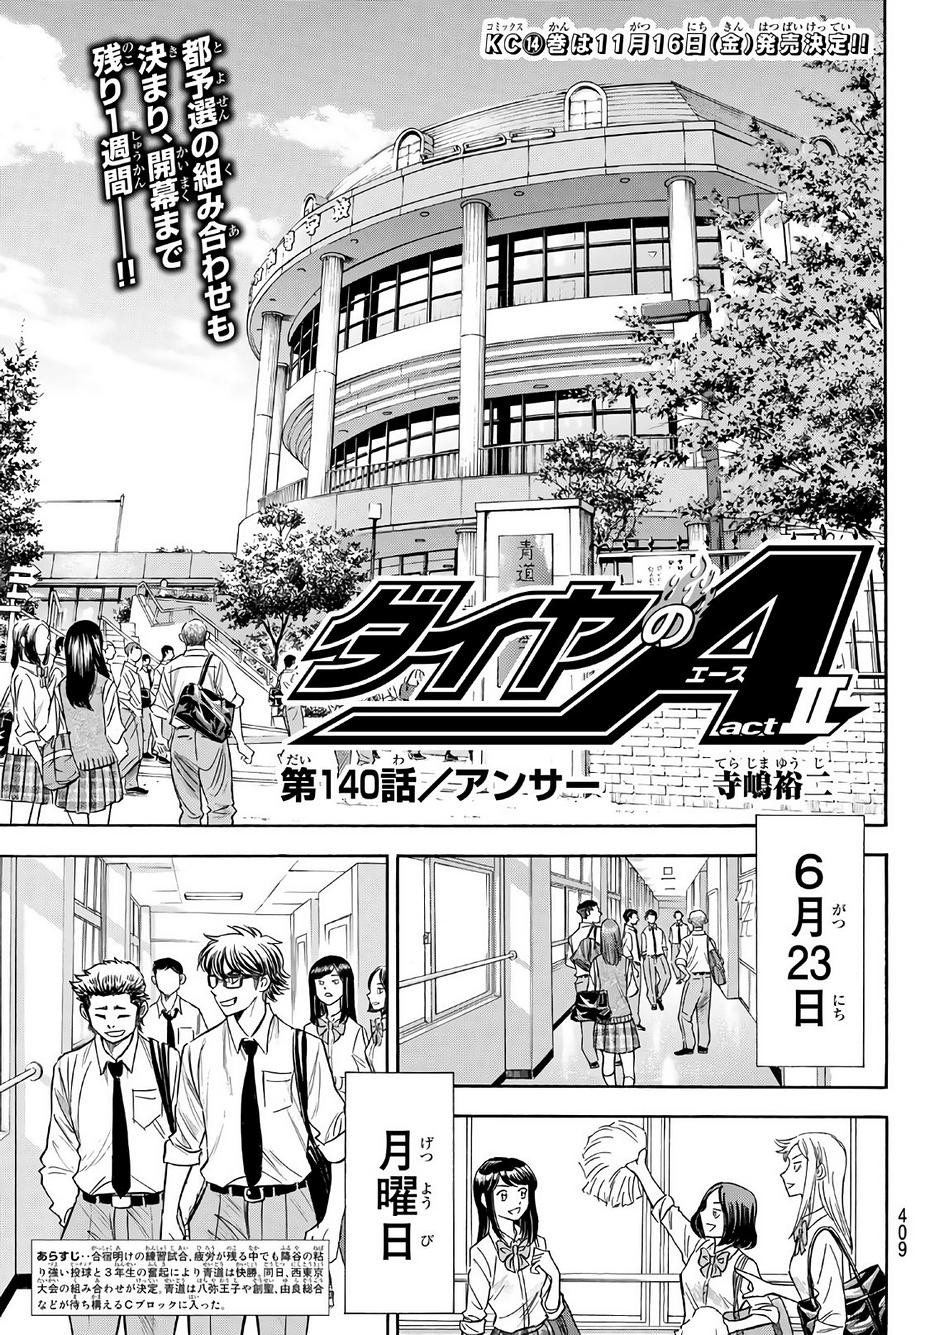 Ace-of-Diamond-Act-II Chapter 140 Page 1